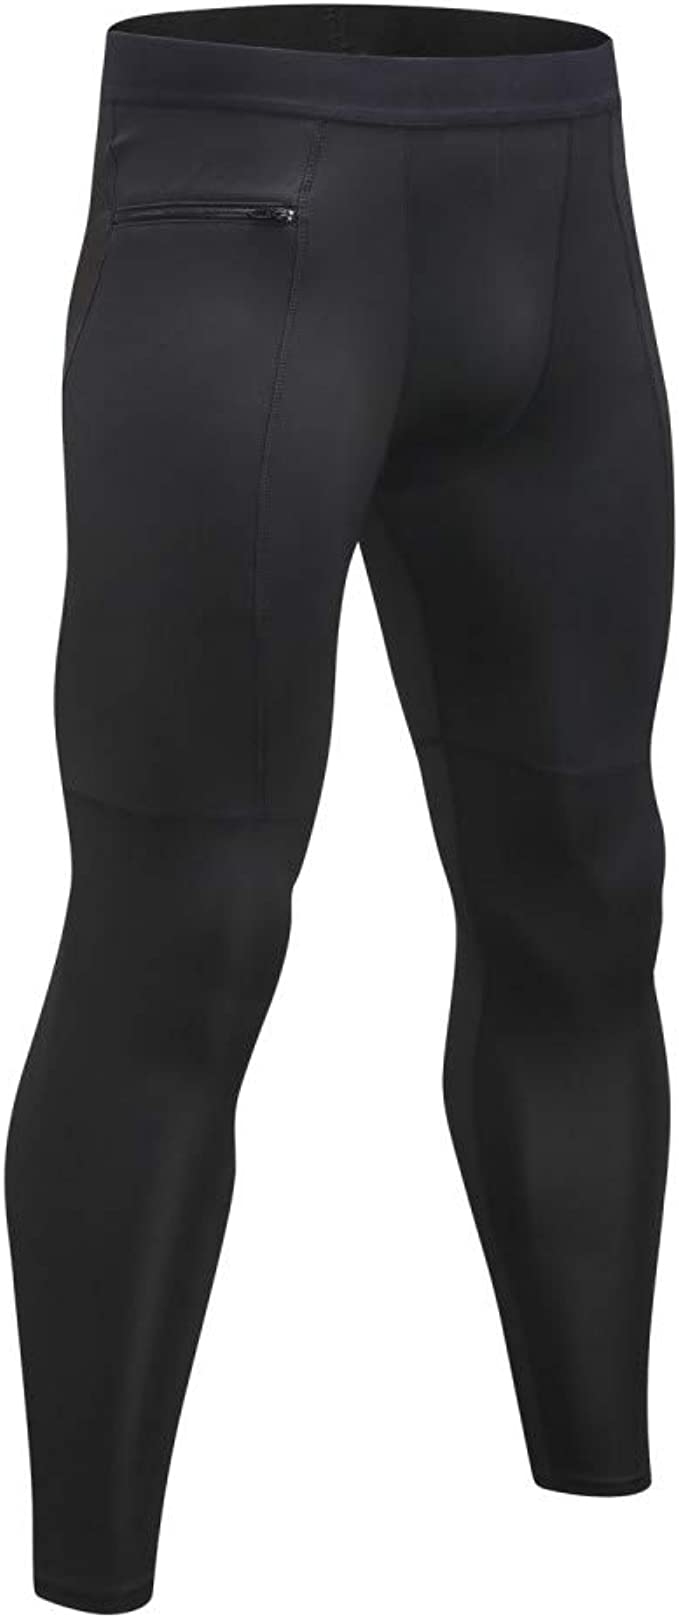 Men/'s Cycling Running Compression Fitness Gym Tights Sports Pants With Pocket